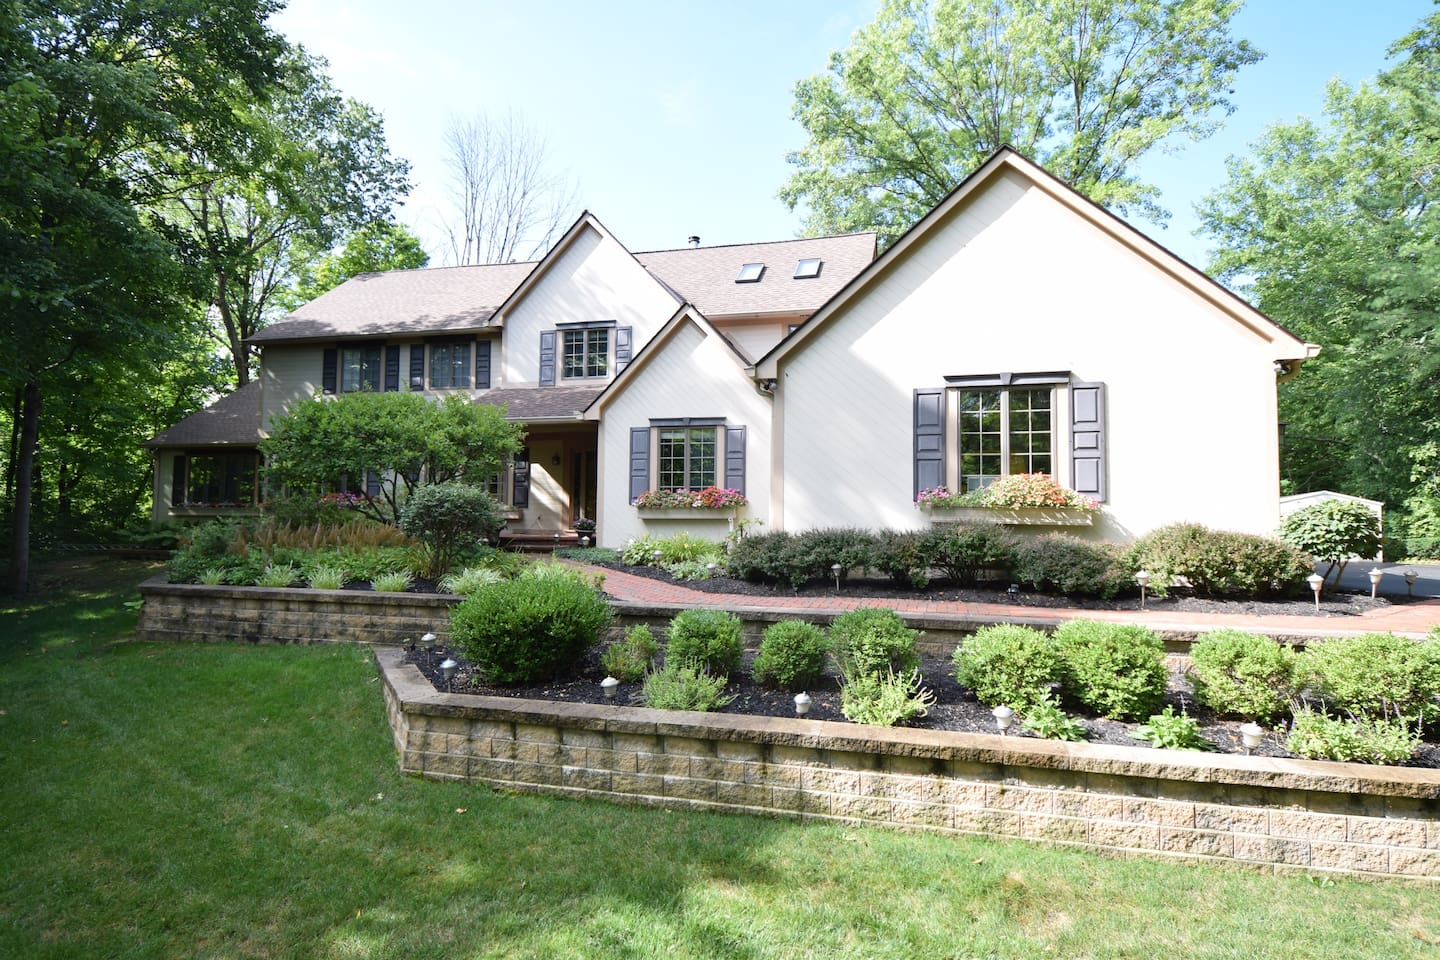 Beautiful home on 1.2 acres in a wooded setting